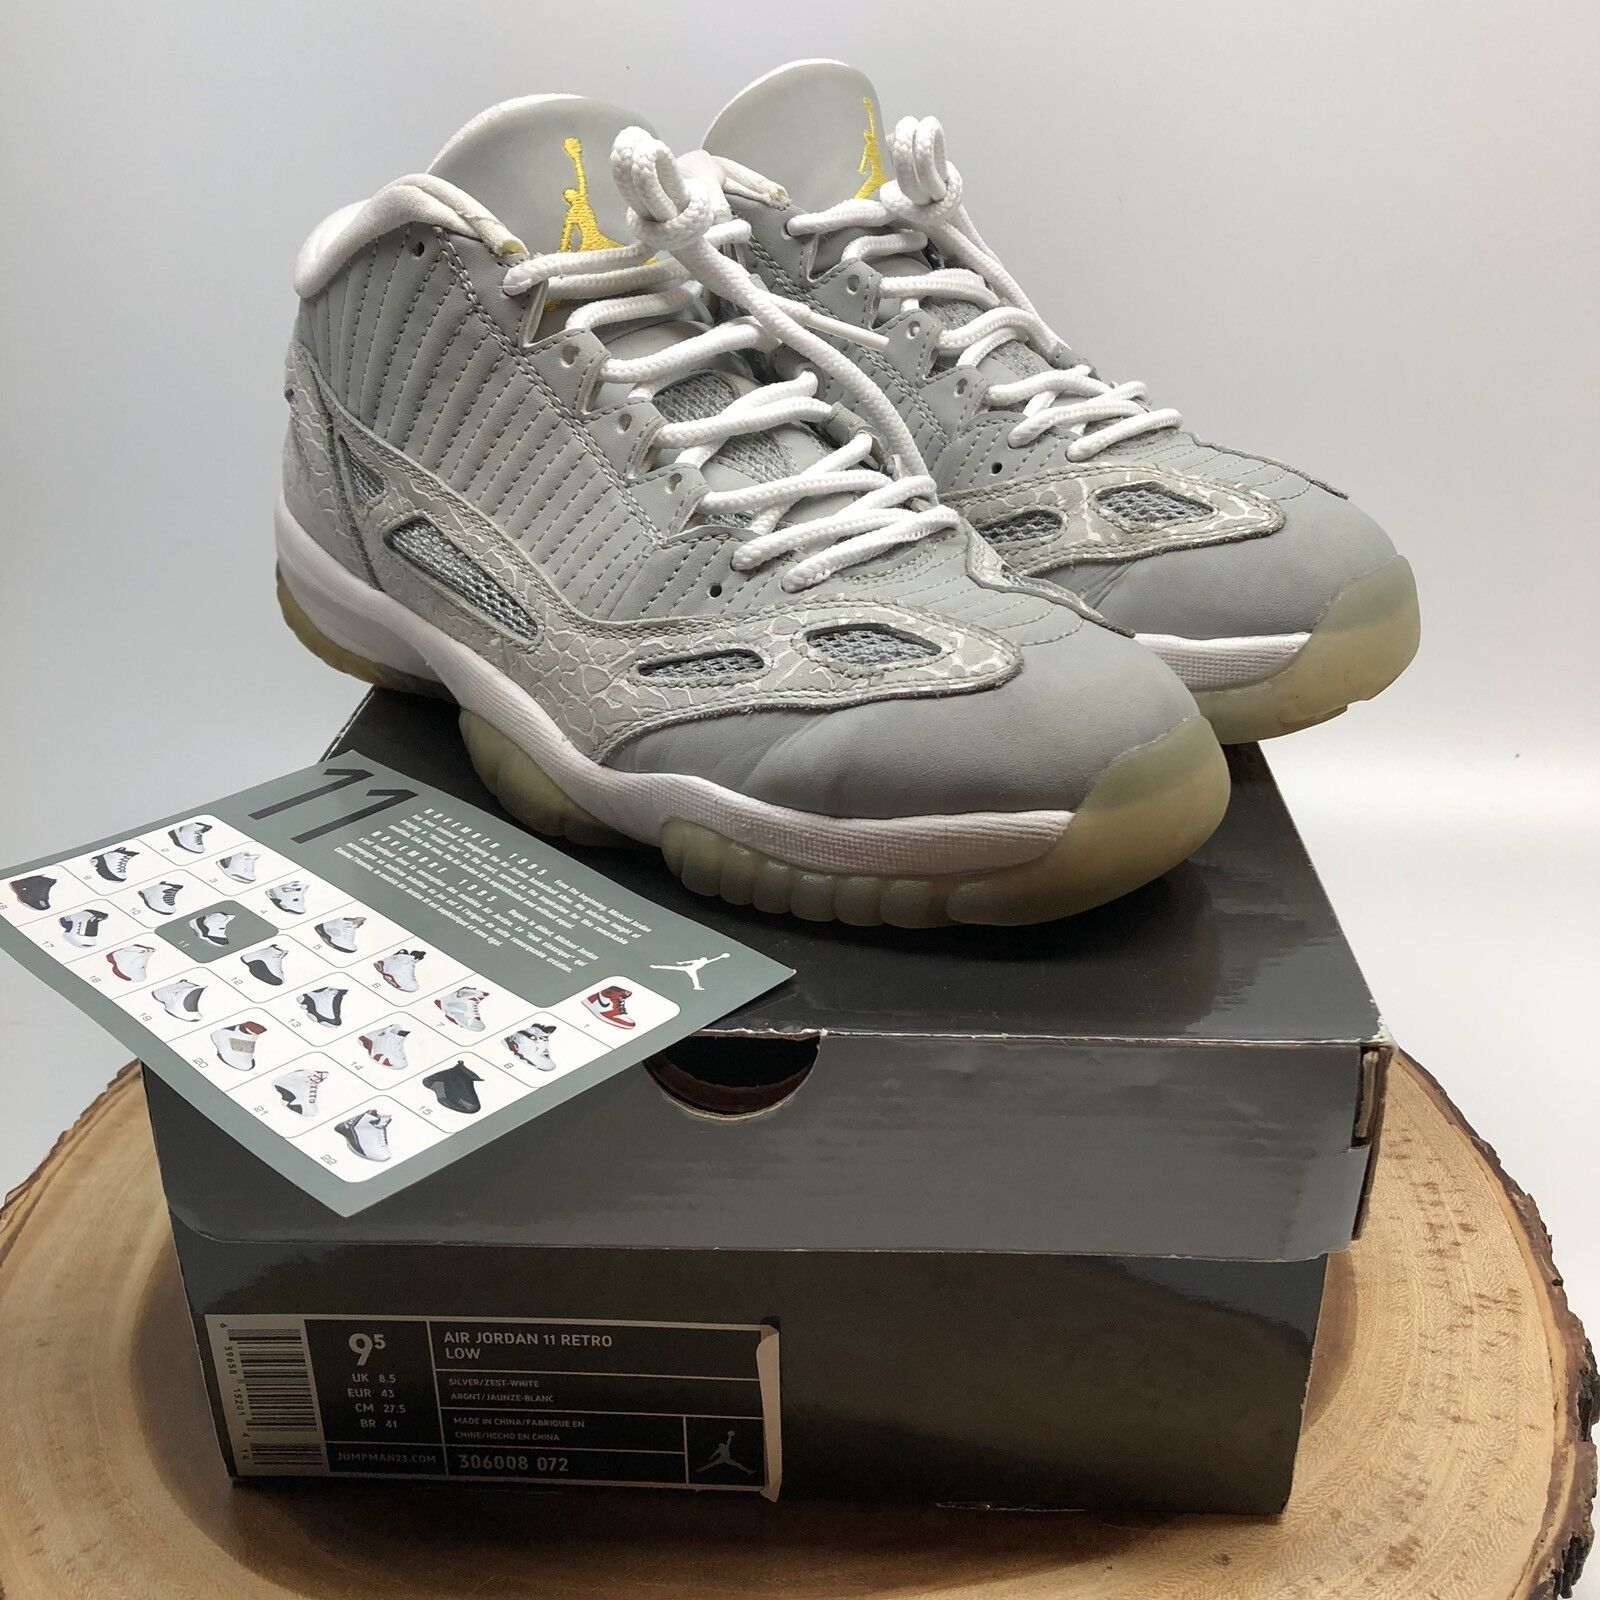 2007 Nike Air Jordan 11 XI Retro Low Silver Zest Sz 9.5 306008-072 Cool Grey IV